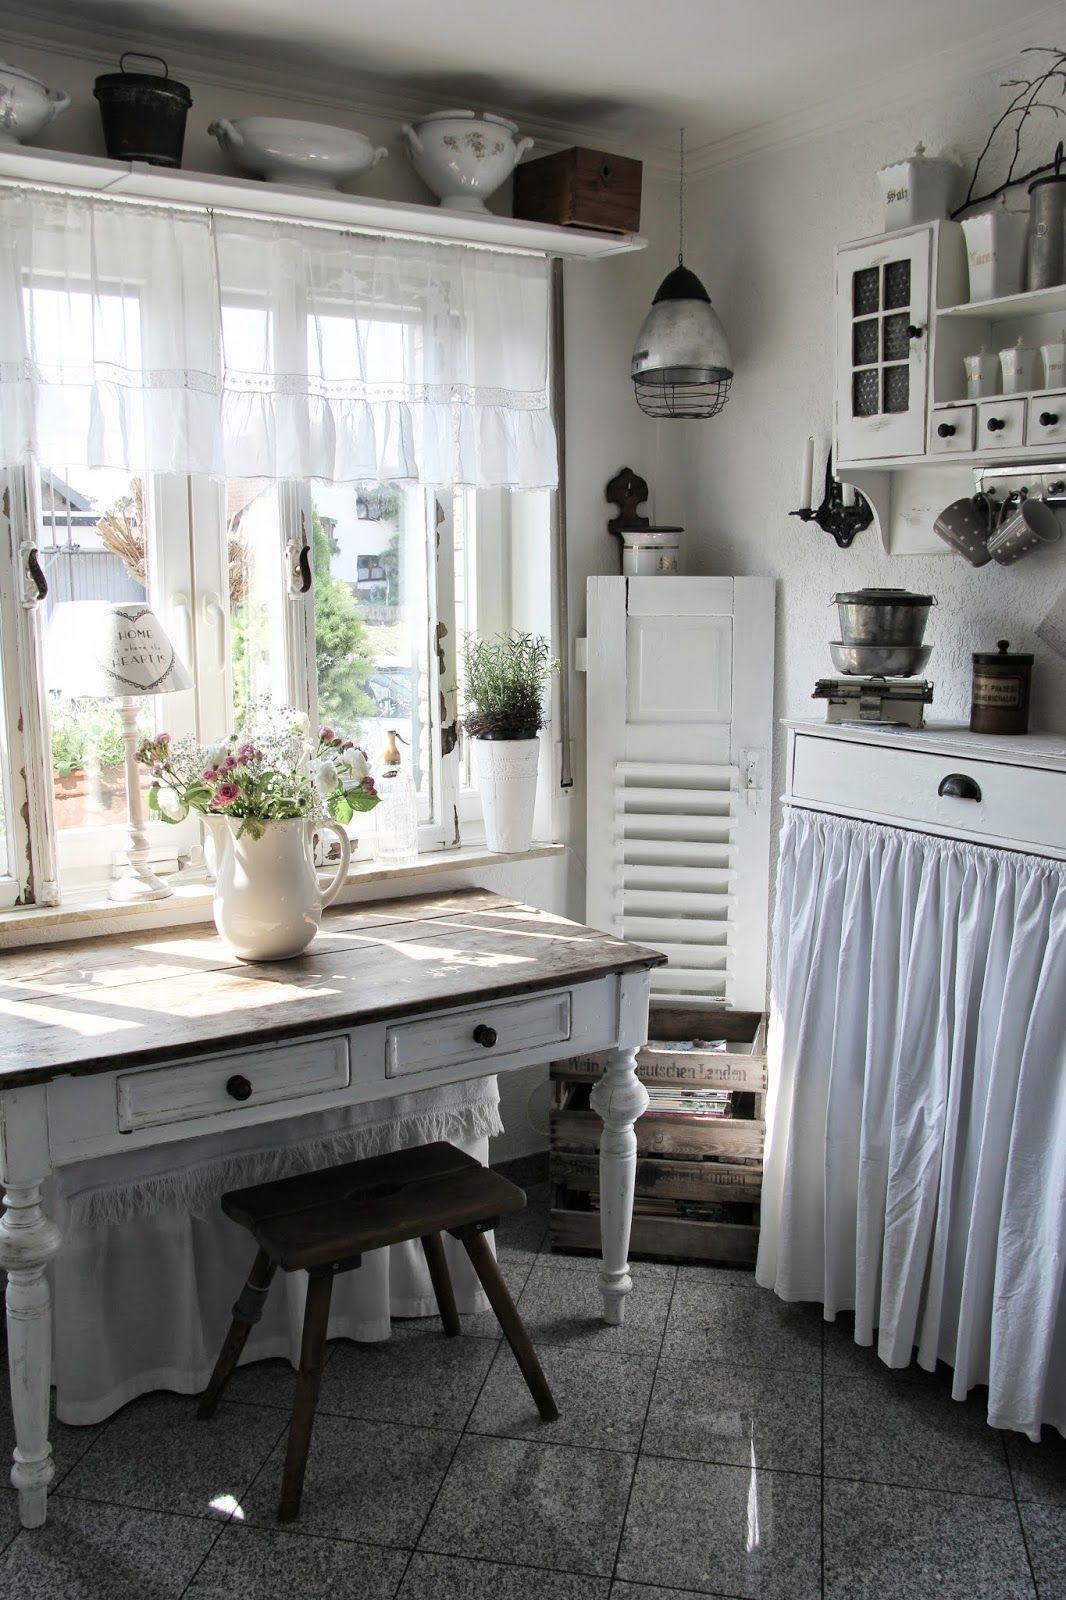 Shelf Above Window Table Under Window Perfect White